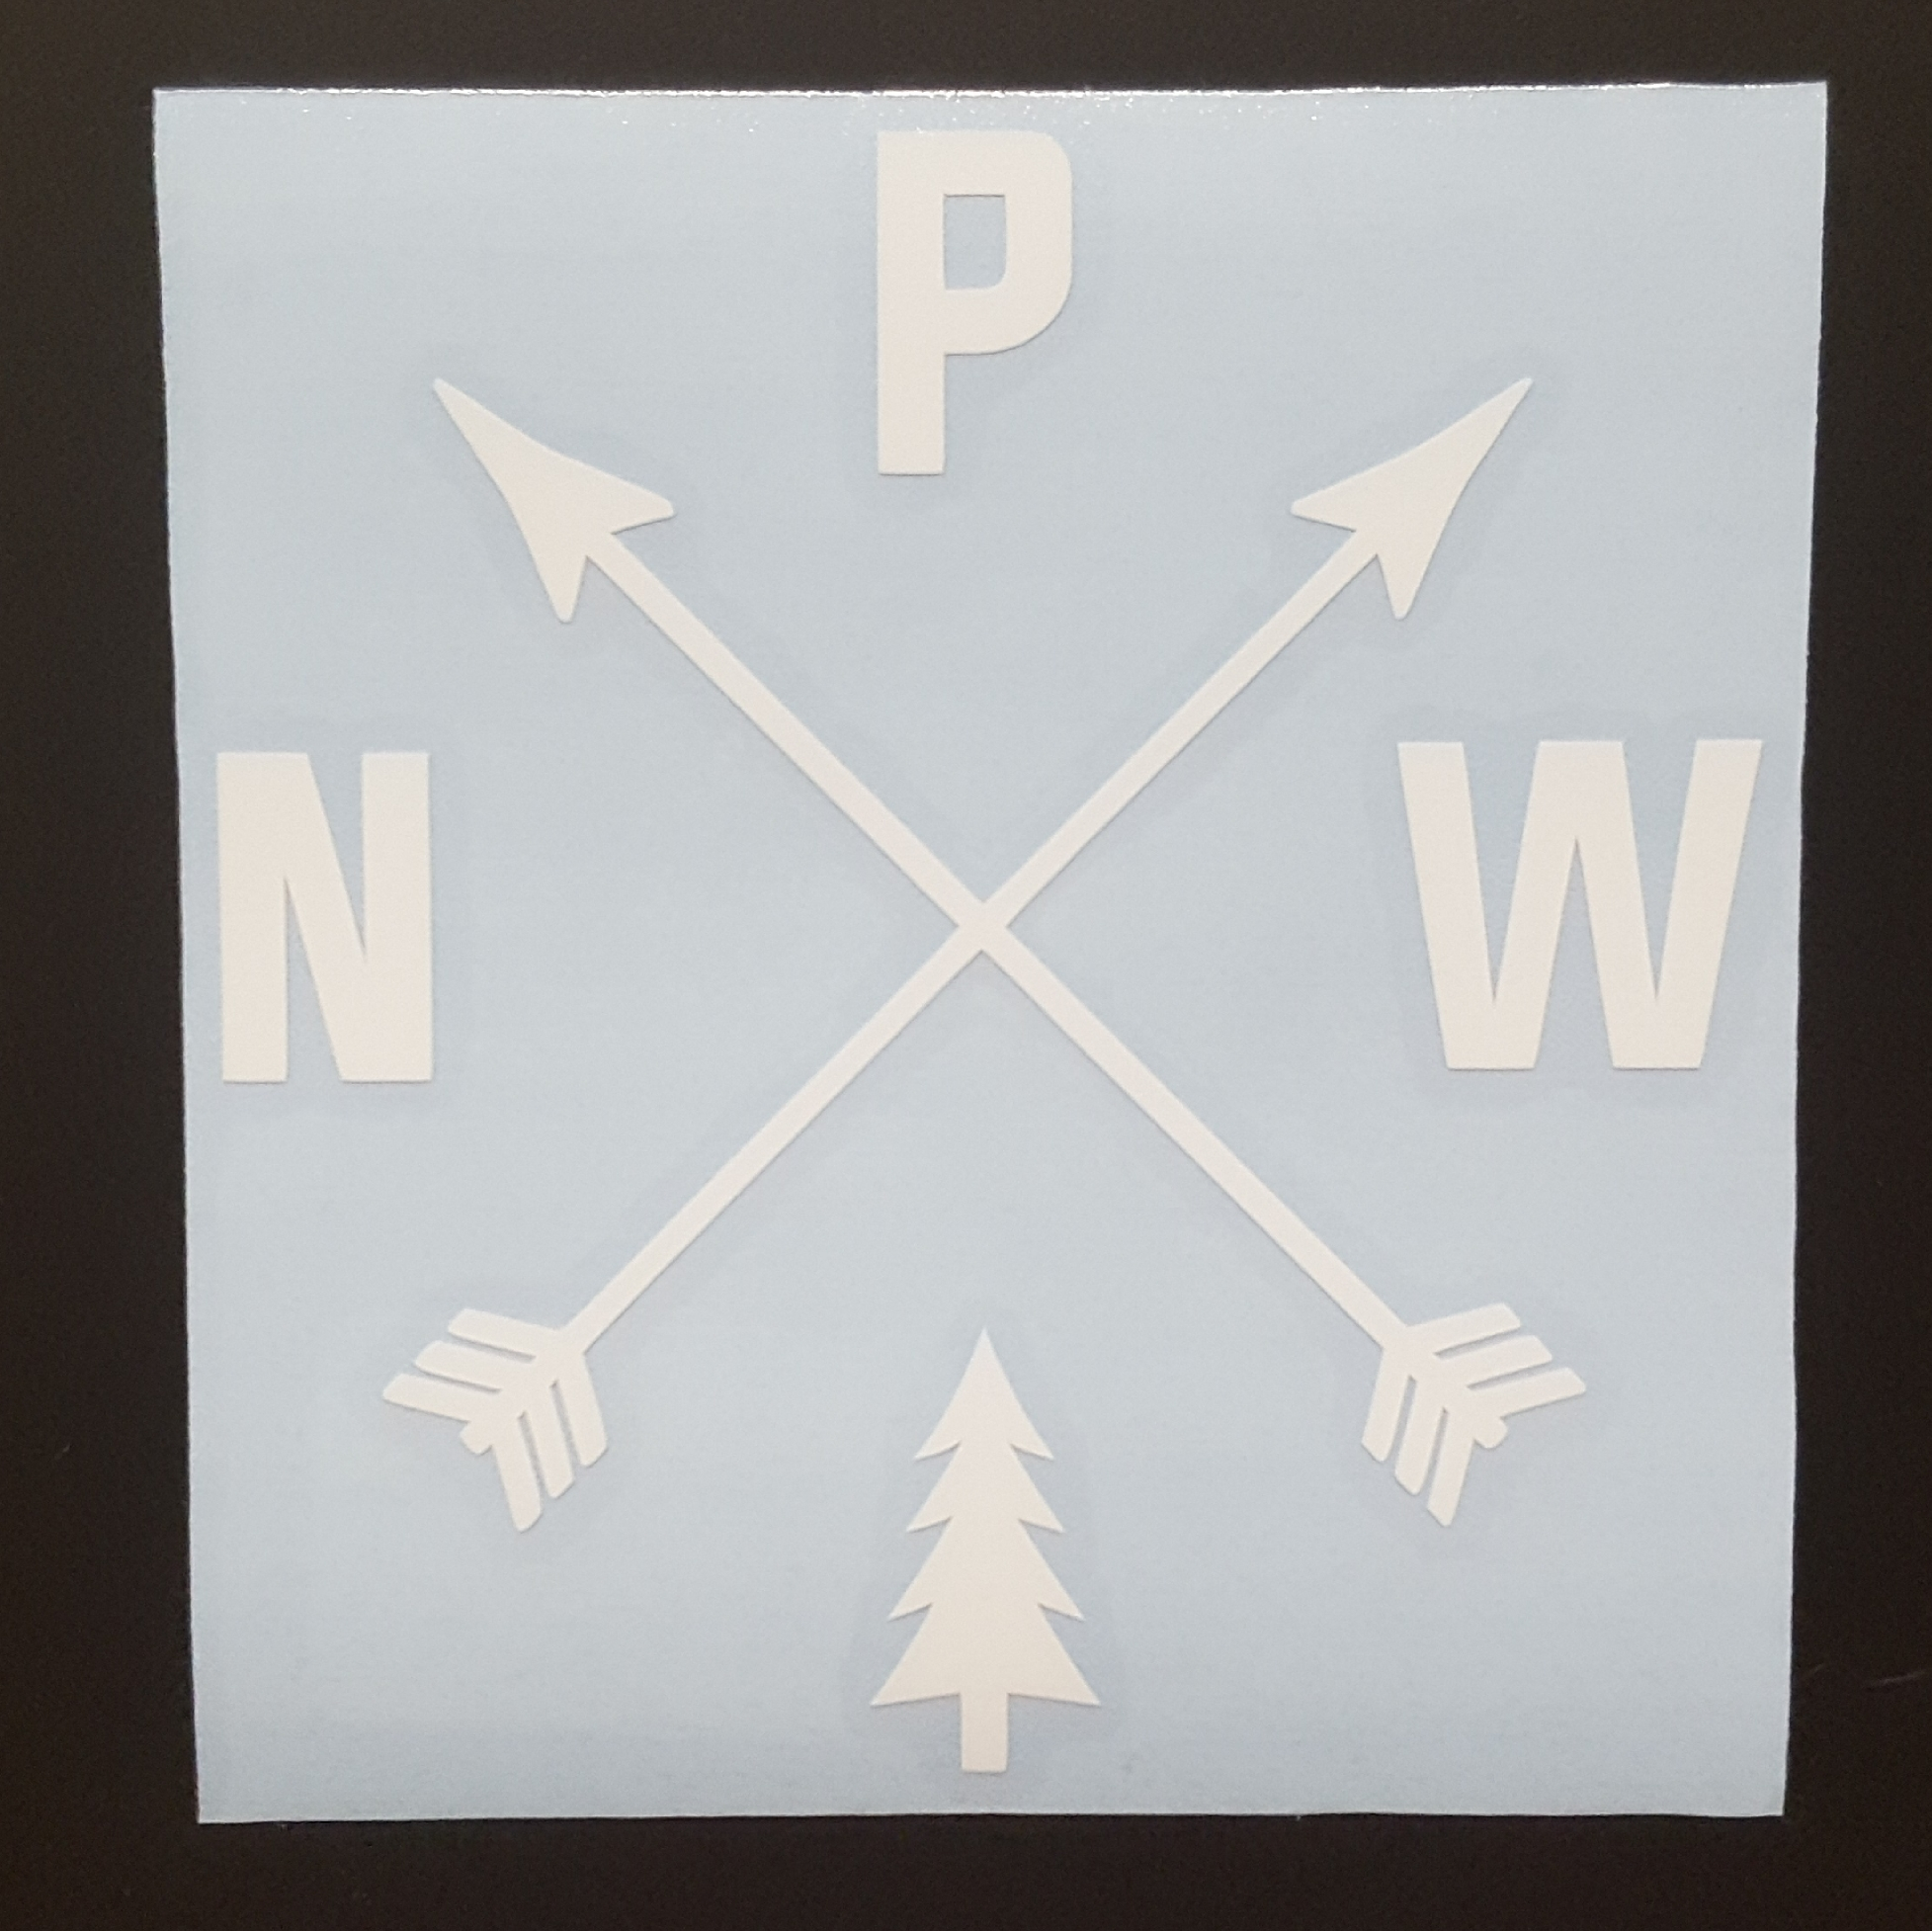 PNW Arrows Sticker